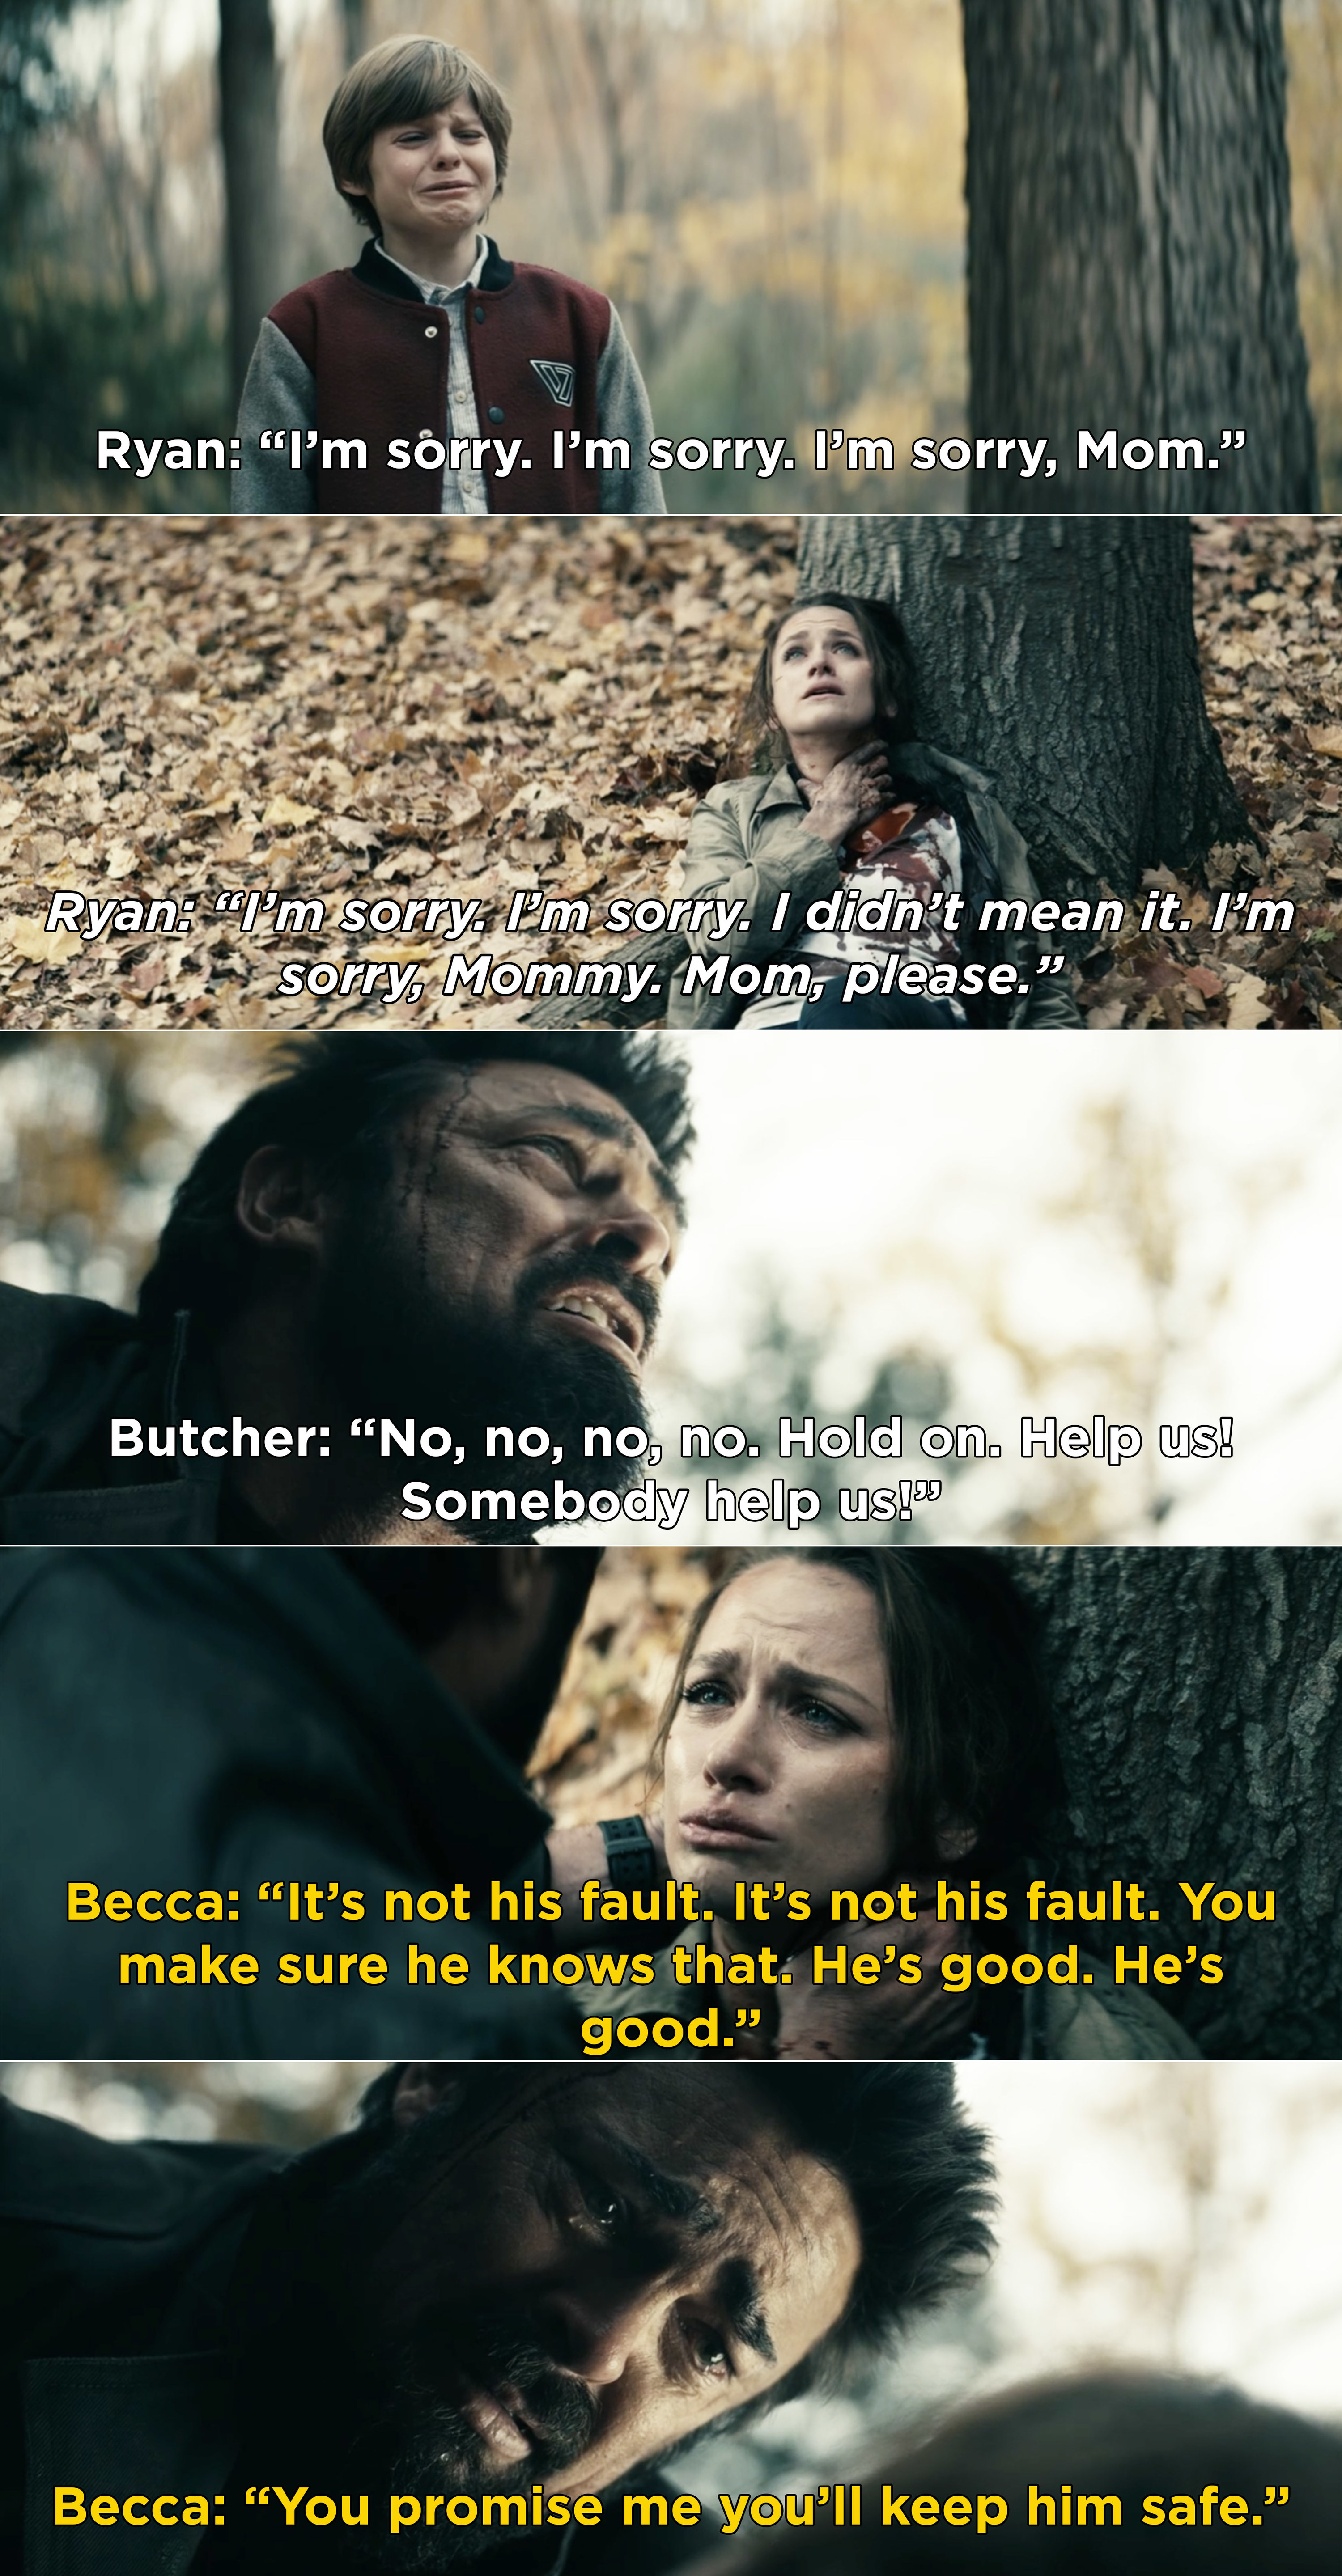 Ryan sobbing and apologizing and Becca asking Butcher to keep Ryan safe while Butcher yells for help